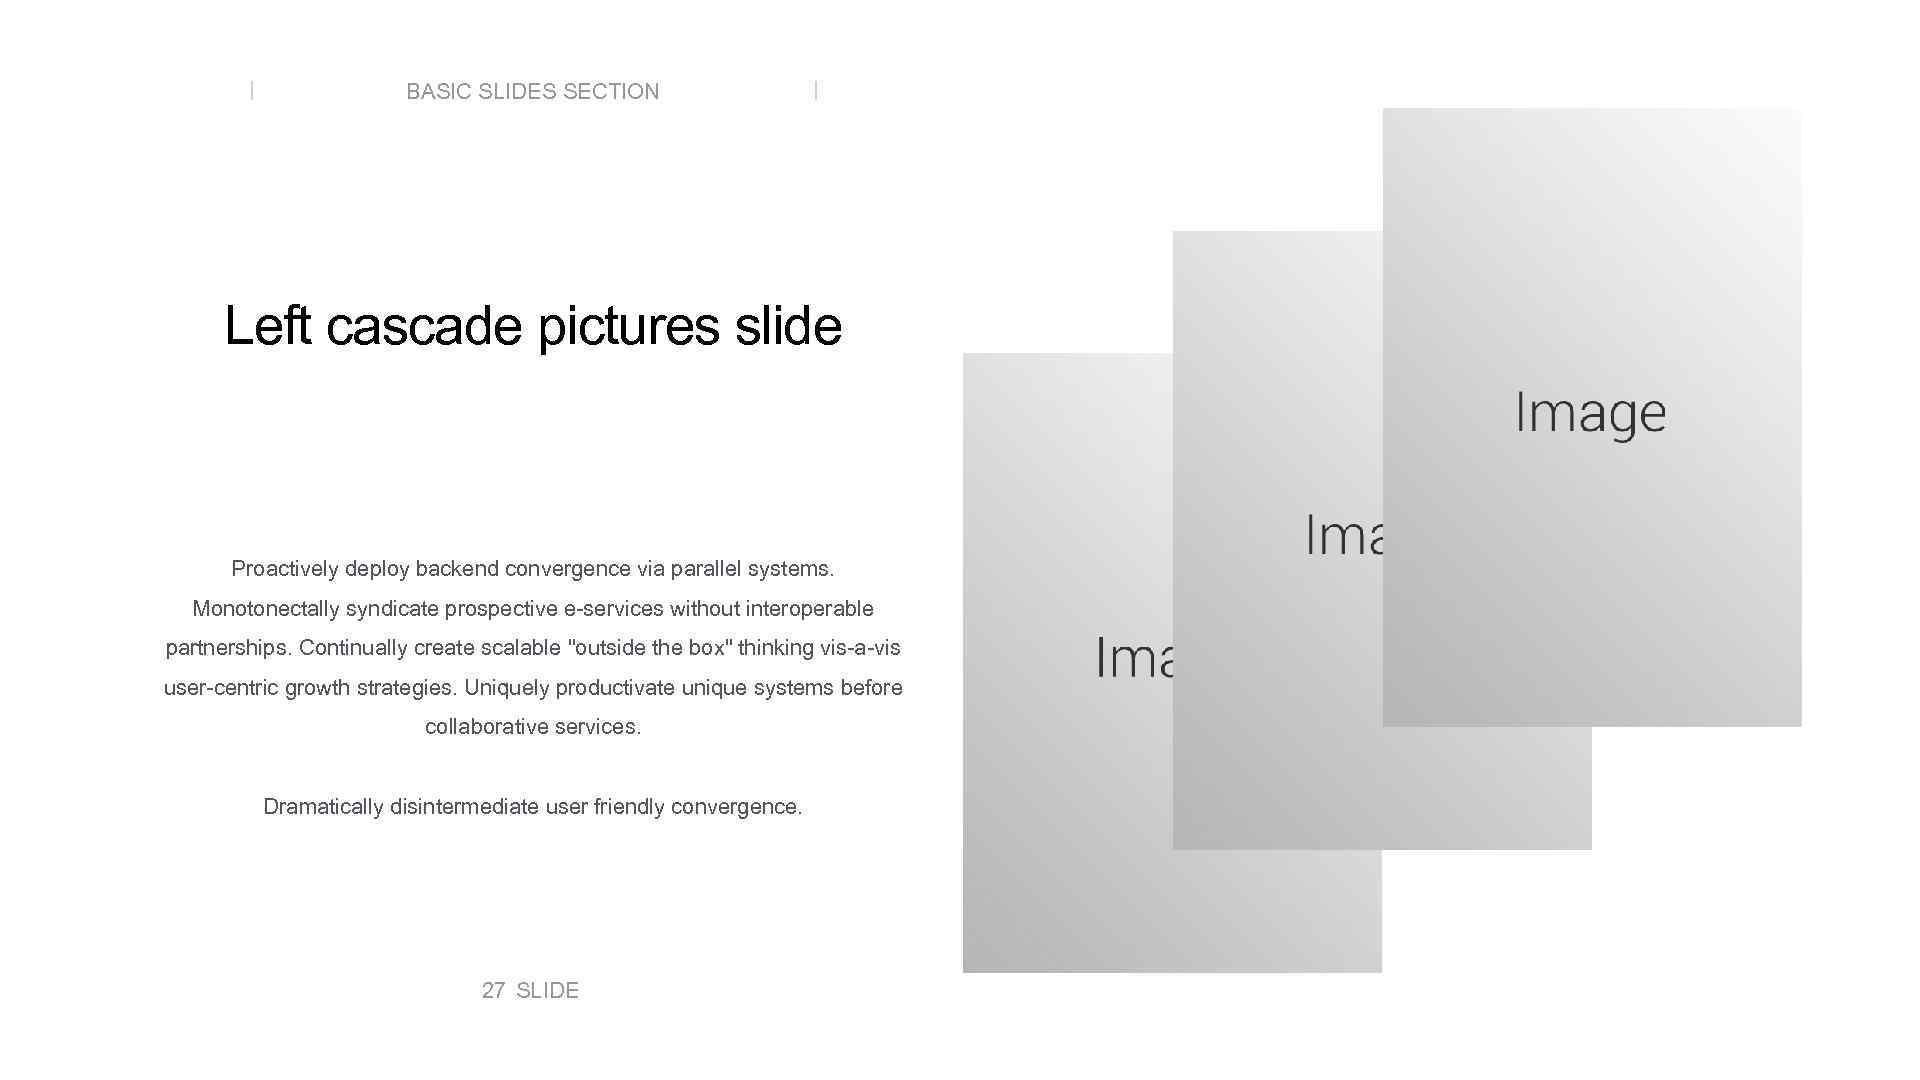 BASIC SLIDES SECTION Left cascade pictures slide Proactively deploy backend convergence via parallel systems.